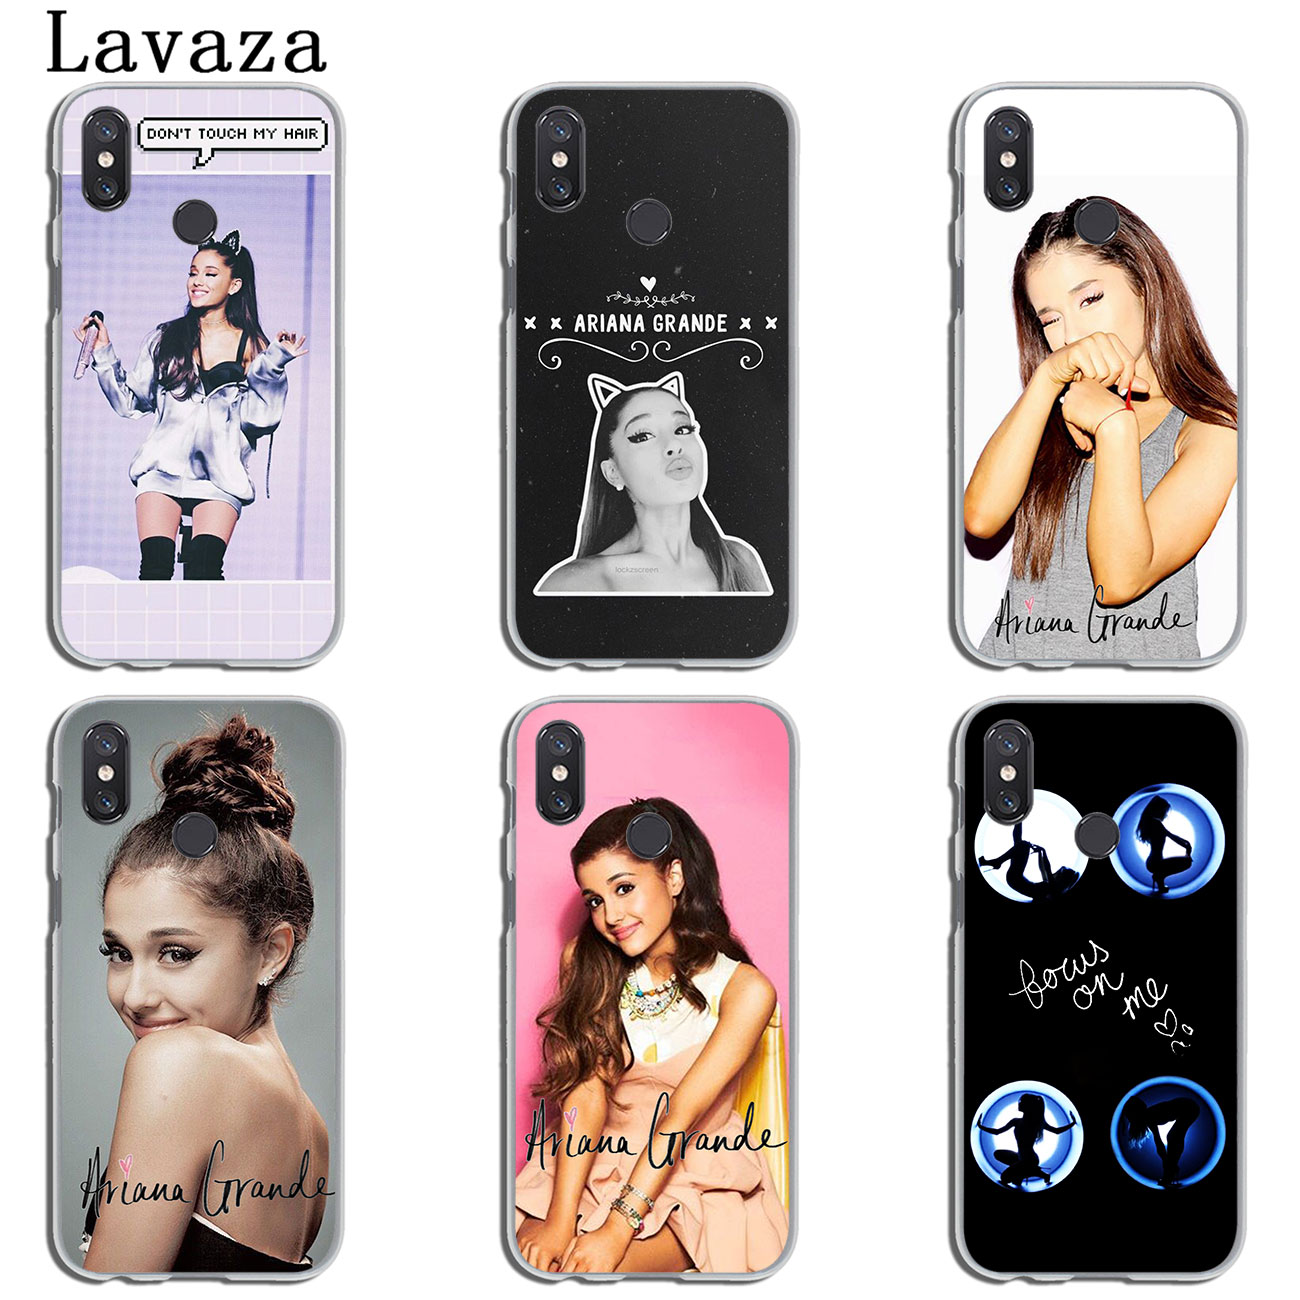 Half-wrapped Case Lavaza Cat Ar Ariana Grande Novelty Fundas Silicone Case For Xiaomi Mi 6 8 9 Se Max 3 Lite F1 A1 A2 5x 6x Max 3 Cheapest Price From Our Site Phone Bags & Cases